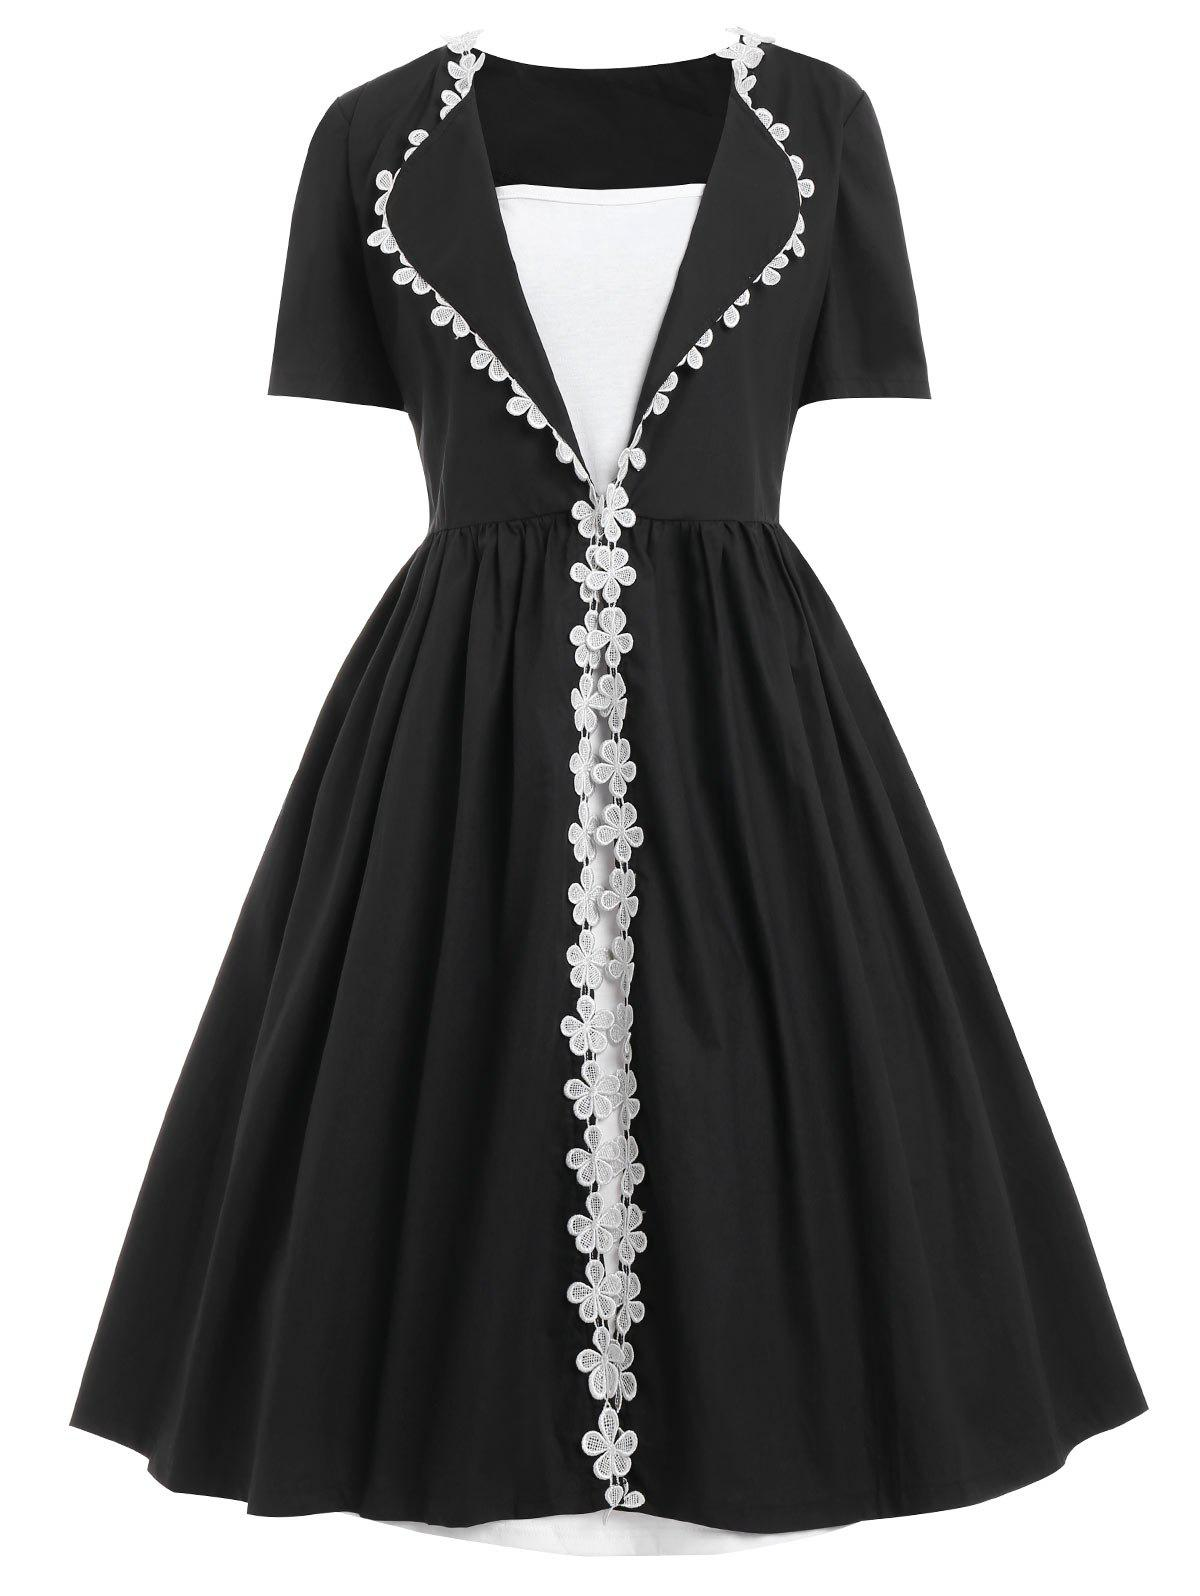 Plus Size Floral Lace Trim Vintage DressWOMEN<br><br>Size: 5XL; Color: BLACK; Style: Vintage; Material: Polyester; Silhouette: A-Line; Dresses Length: Knee-Length; Neckline: Square Collar; Sleeve Length: Short Sleeves; Embellishment: Lace; Pattern Type: Others; With Belt: No; Season: Fall,Winter; Weight: 0.5700kg; Package Contents: 1 x Dress;